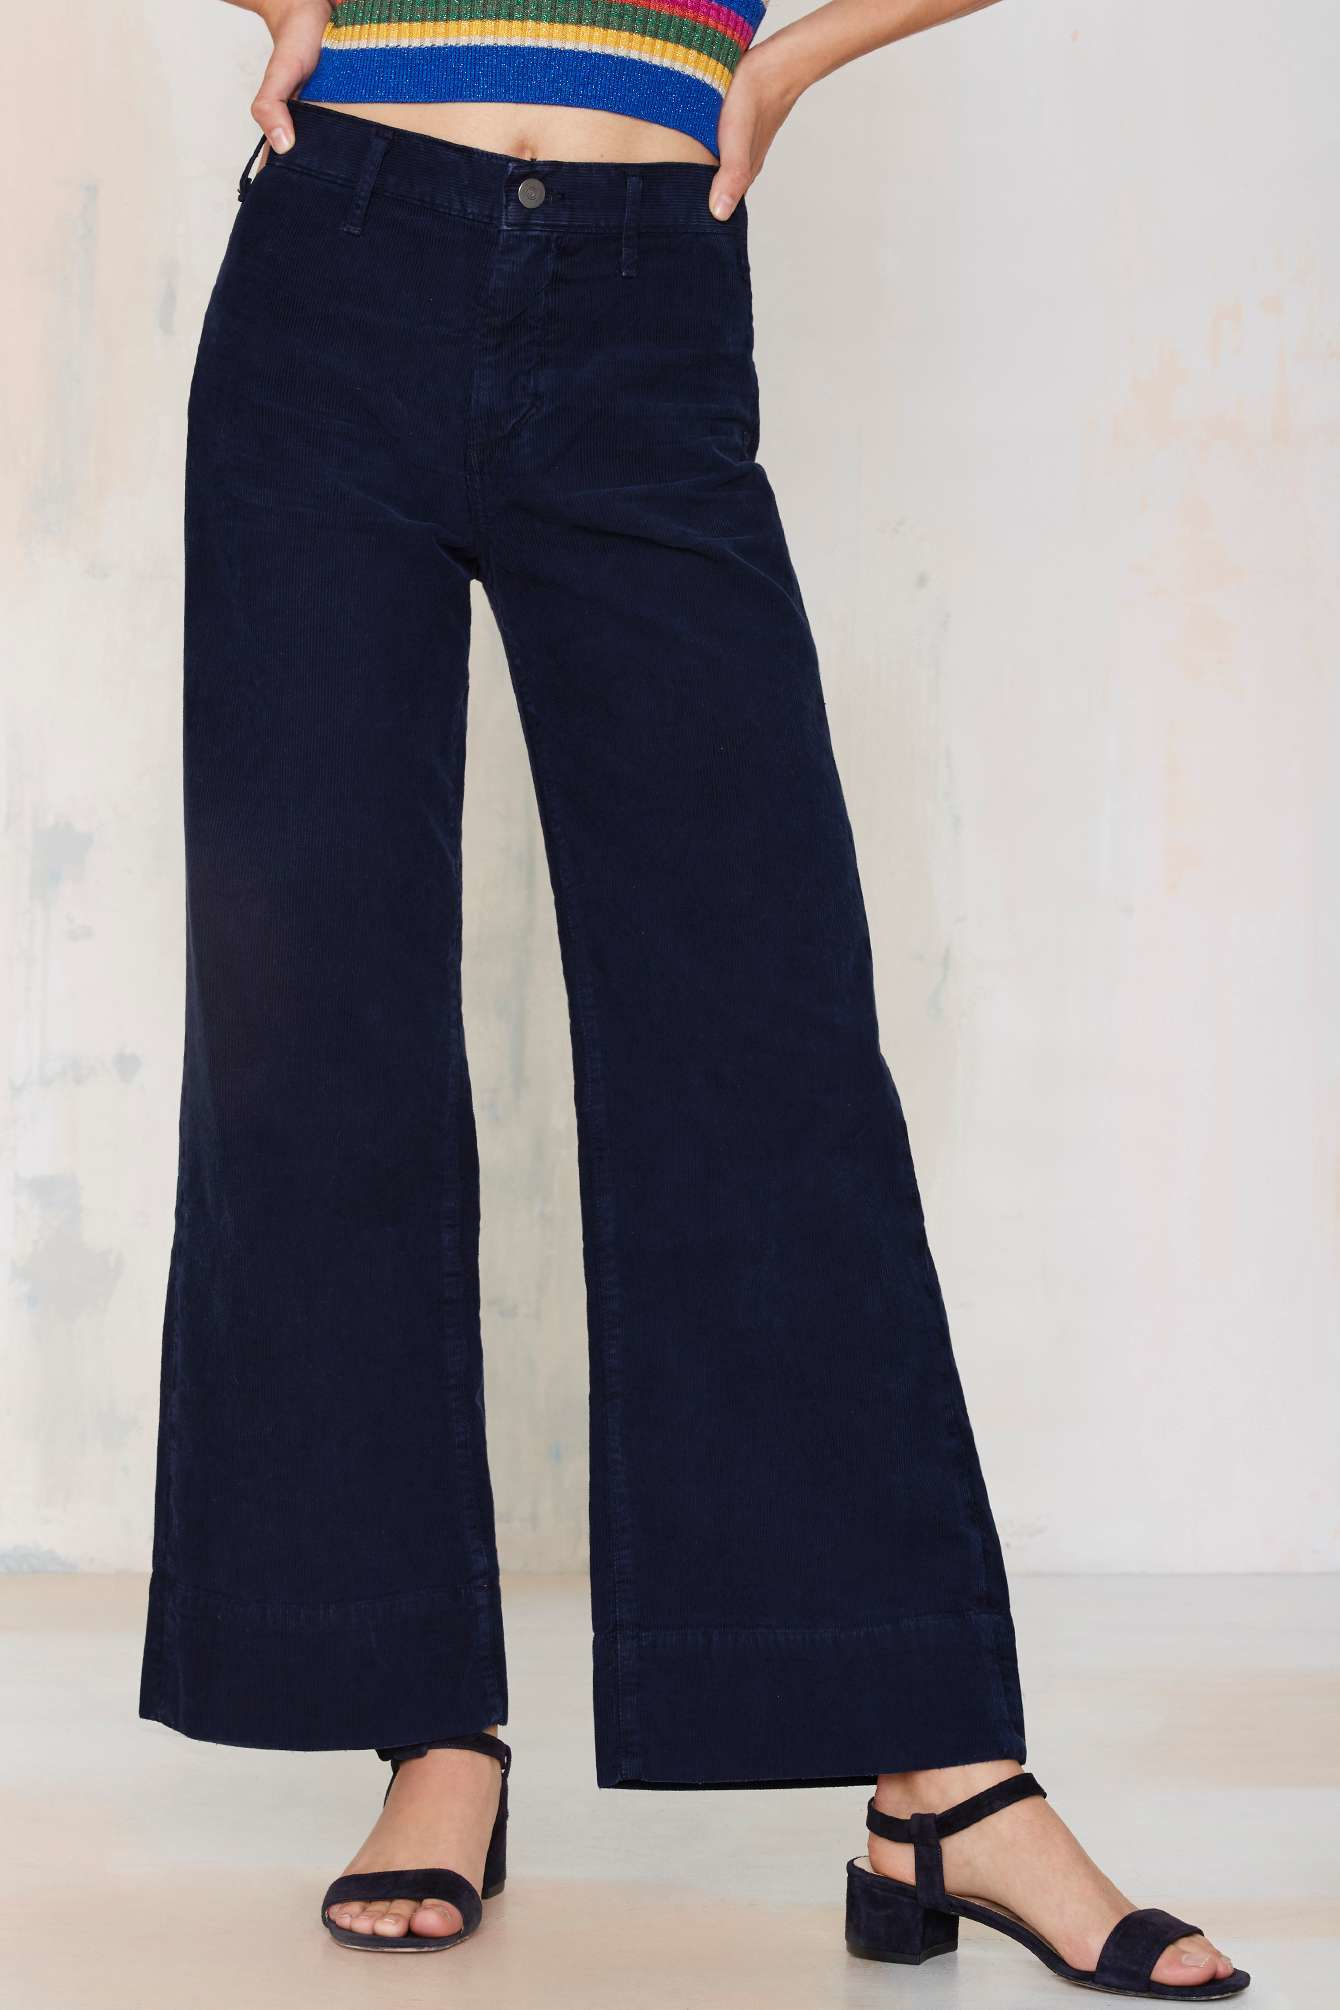 Citizens of humanity Abigail Wide Leg Corduroy Pants in Blue | Lyst